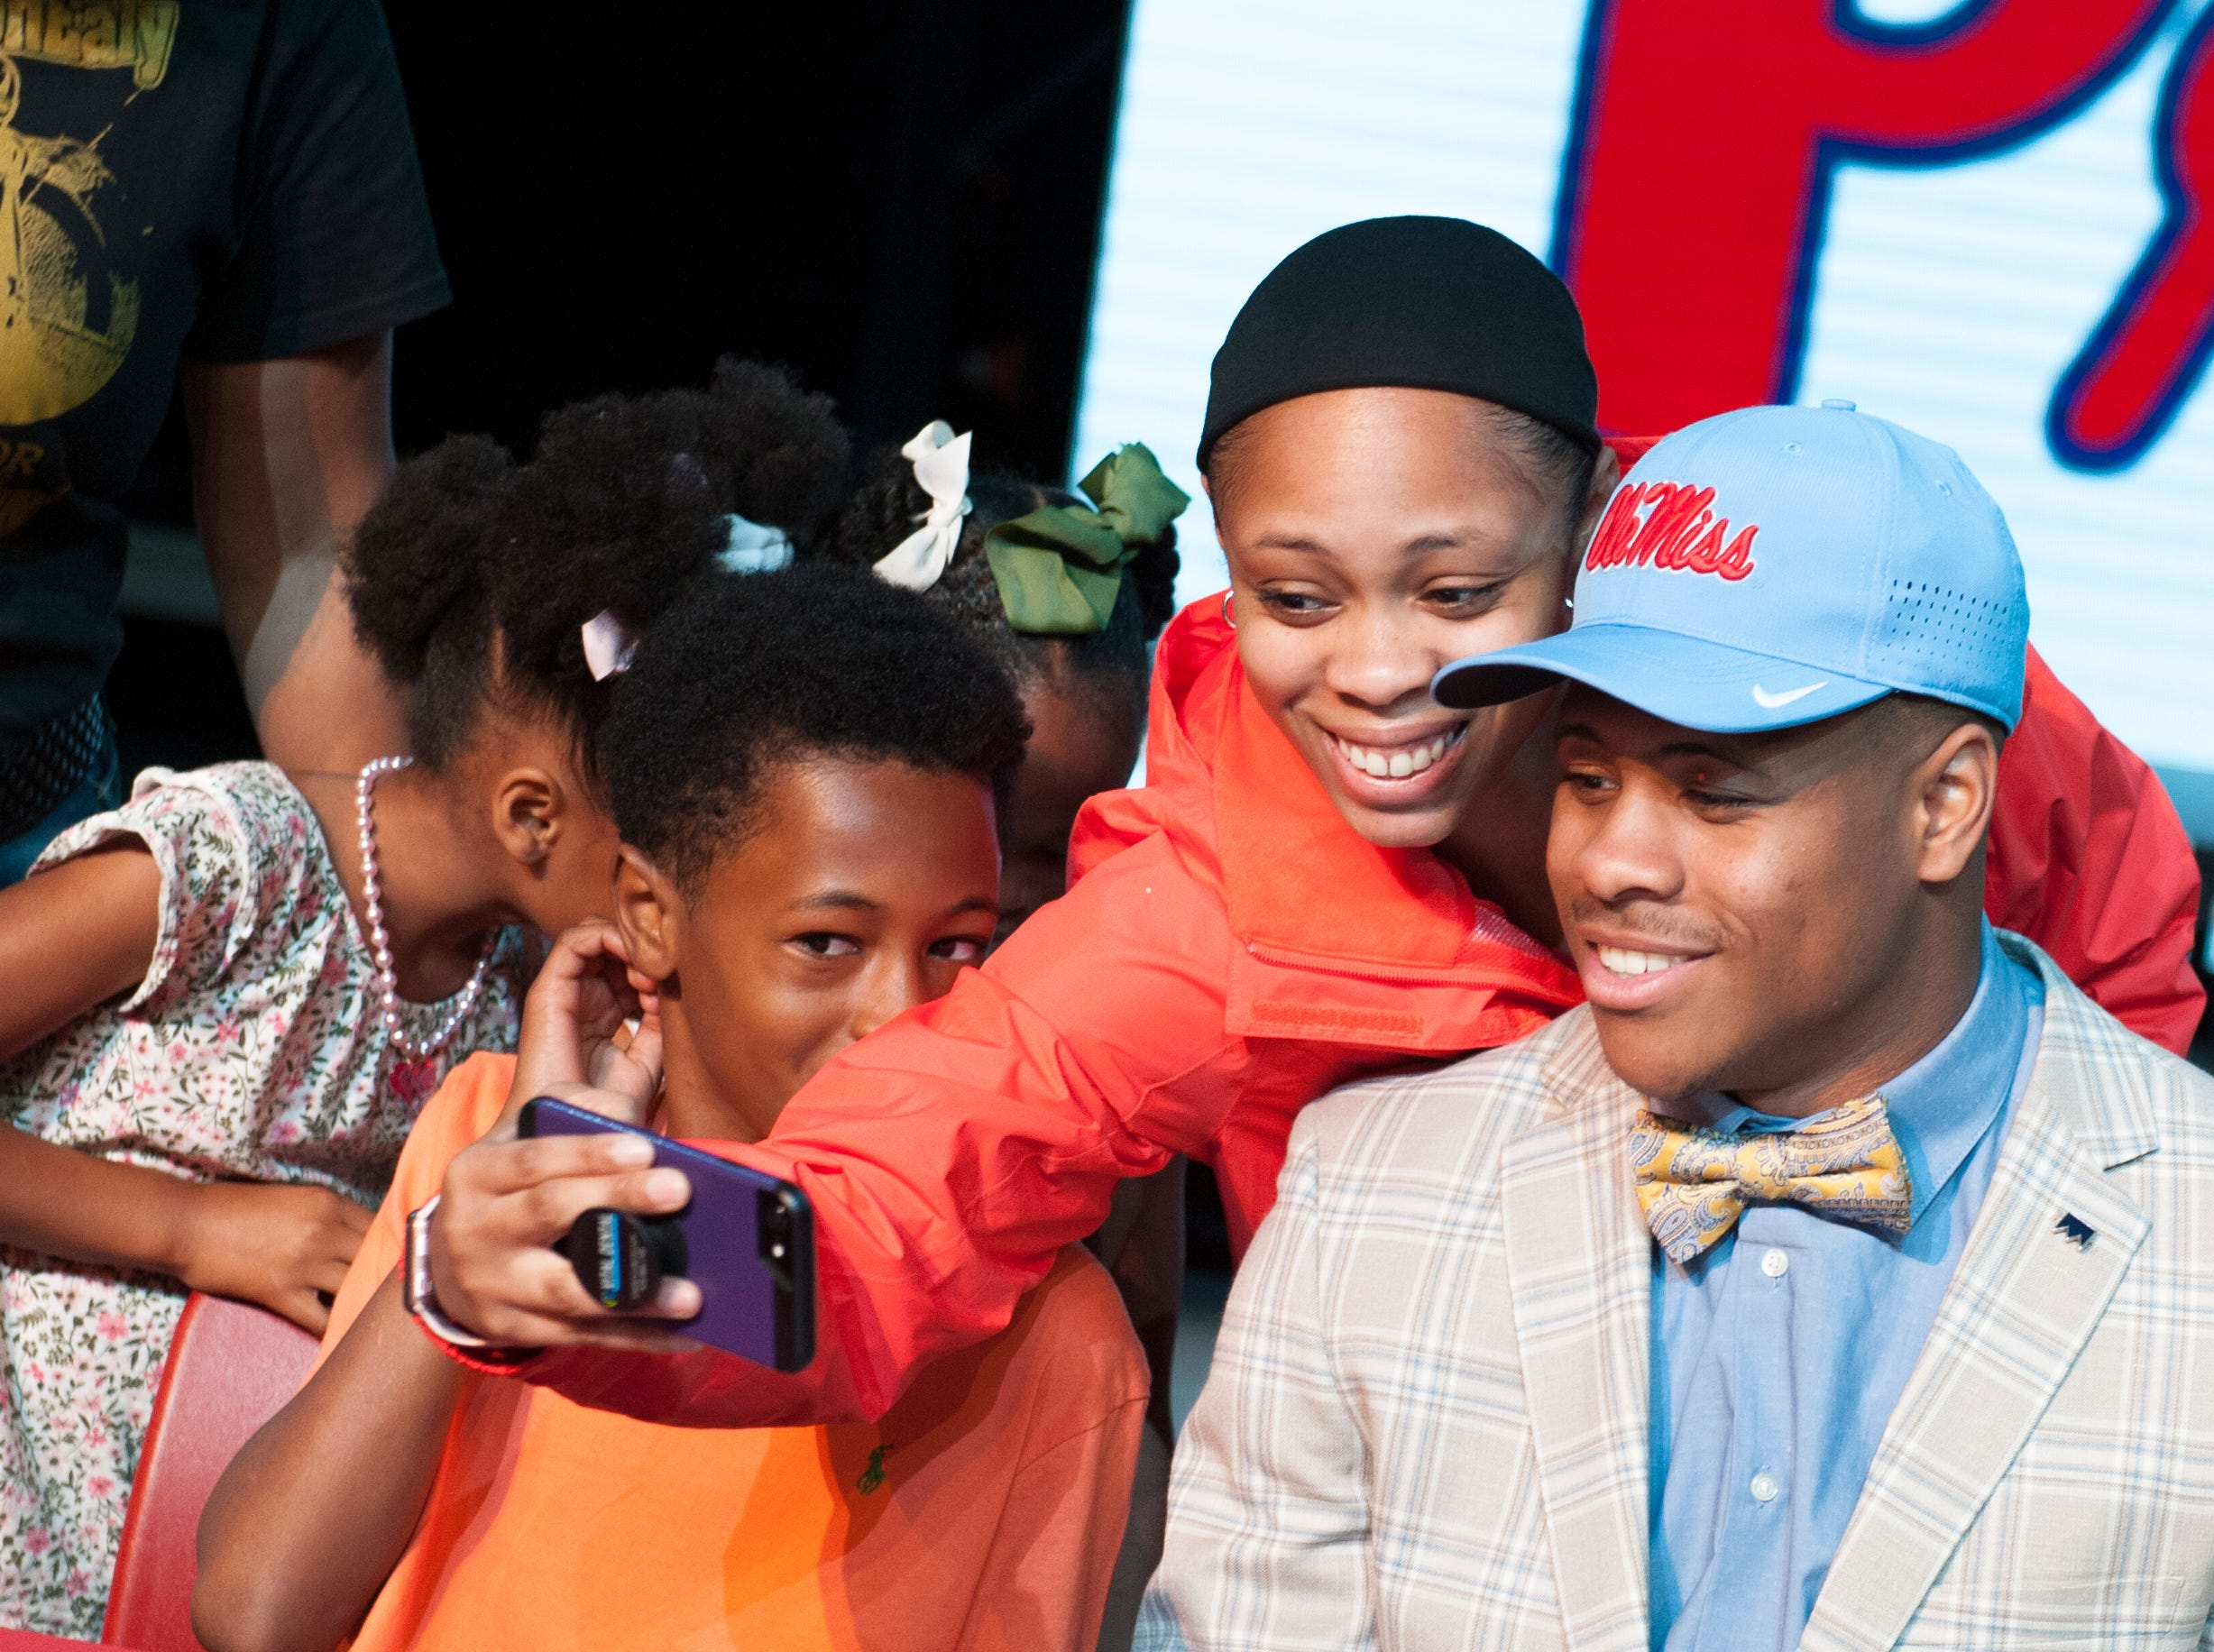 Jackson Prep's Jerrion Ealy, from right, and his sister Raven Carter smile for a selfie with Carter's son, Jeremiah Ricks, 11, as her twin daughters hide from the camera during Signing Day activities at Jackson Prep Friday, Feb. 6, 2019.